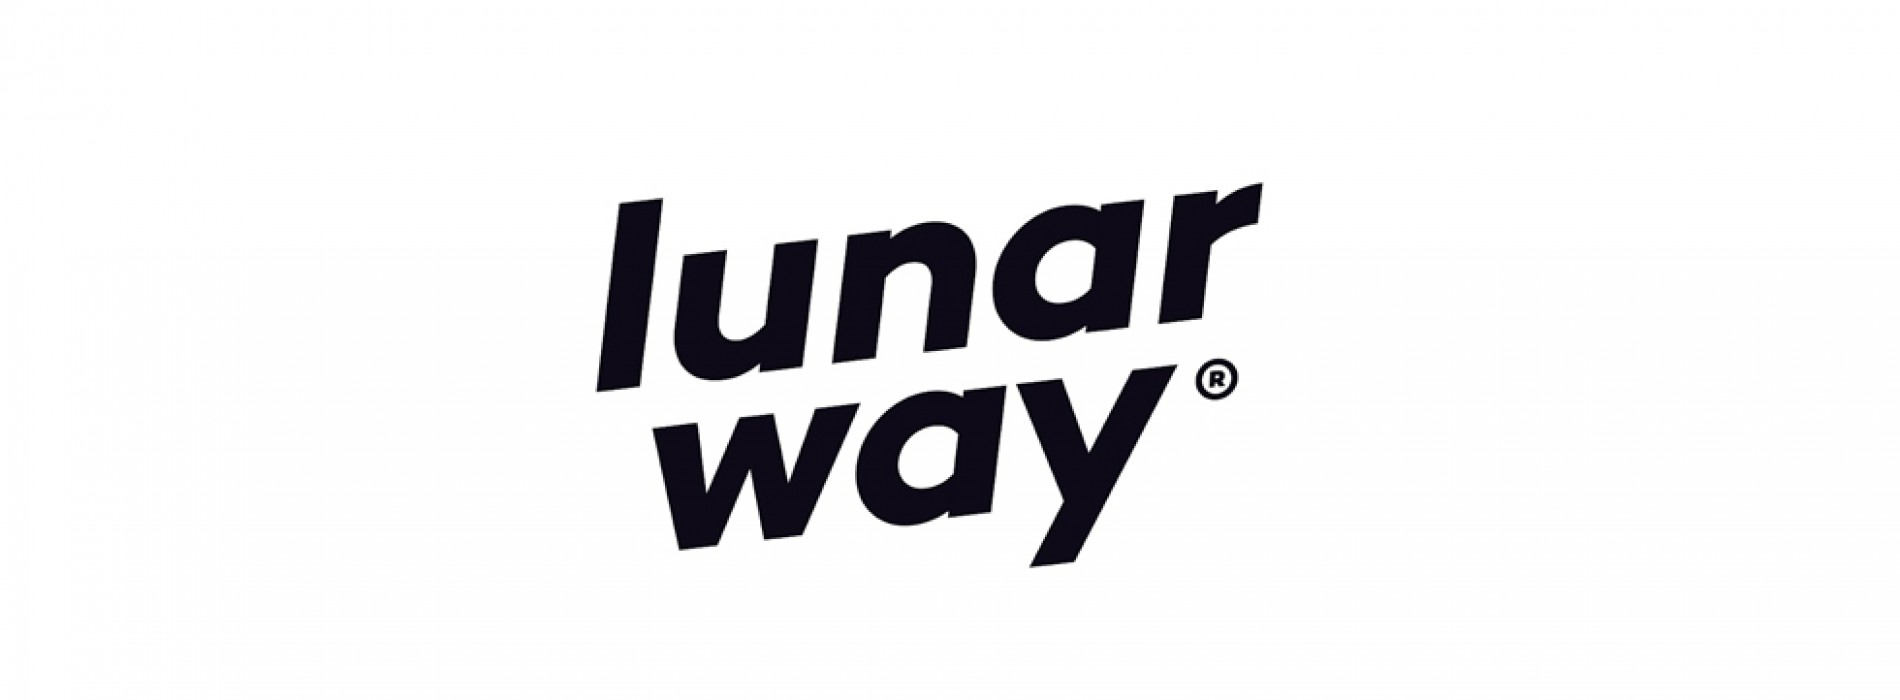 Neo-bank Lunar Way launches 'Travel Card' allowing Danish tourists to avoid overseas spending fees